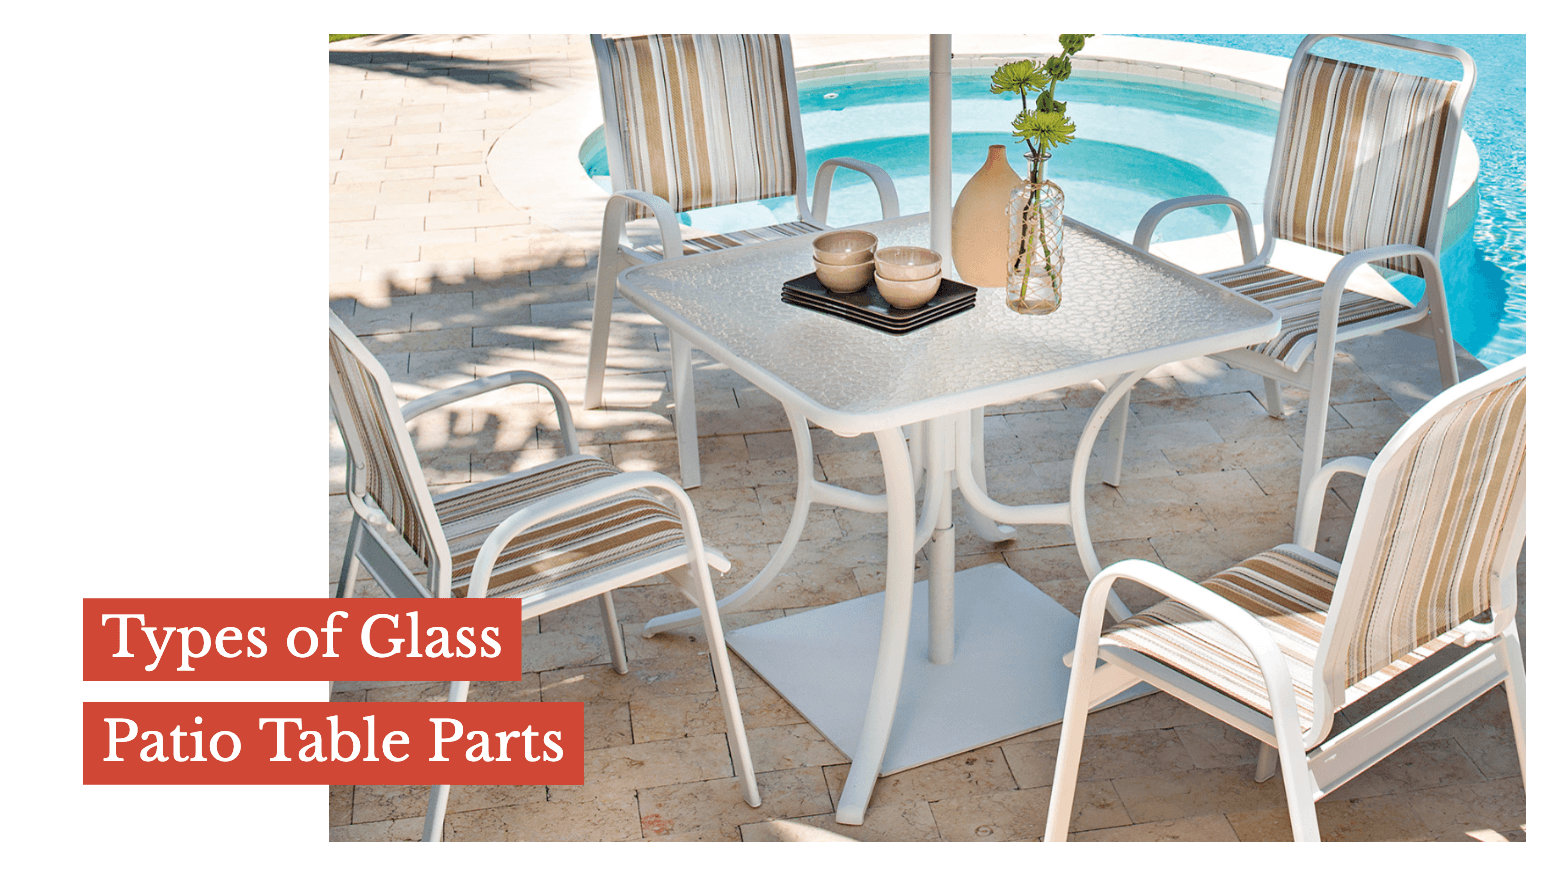 Types of Glass Patio Table Parts